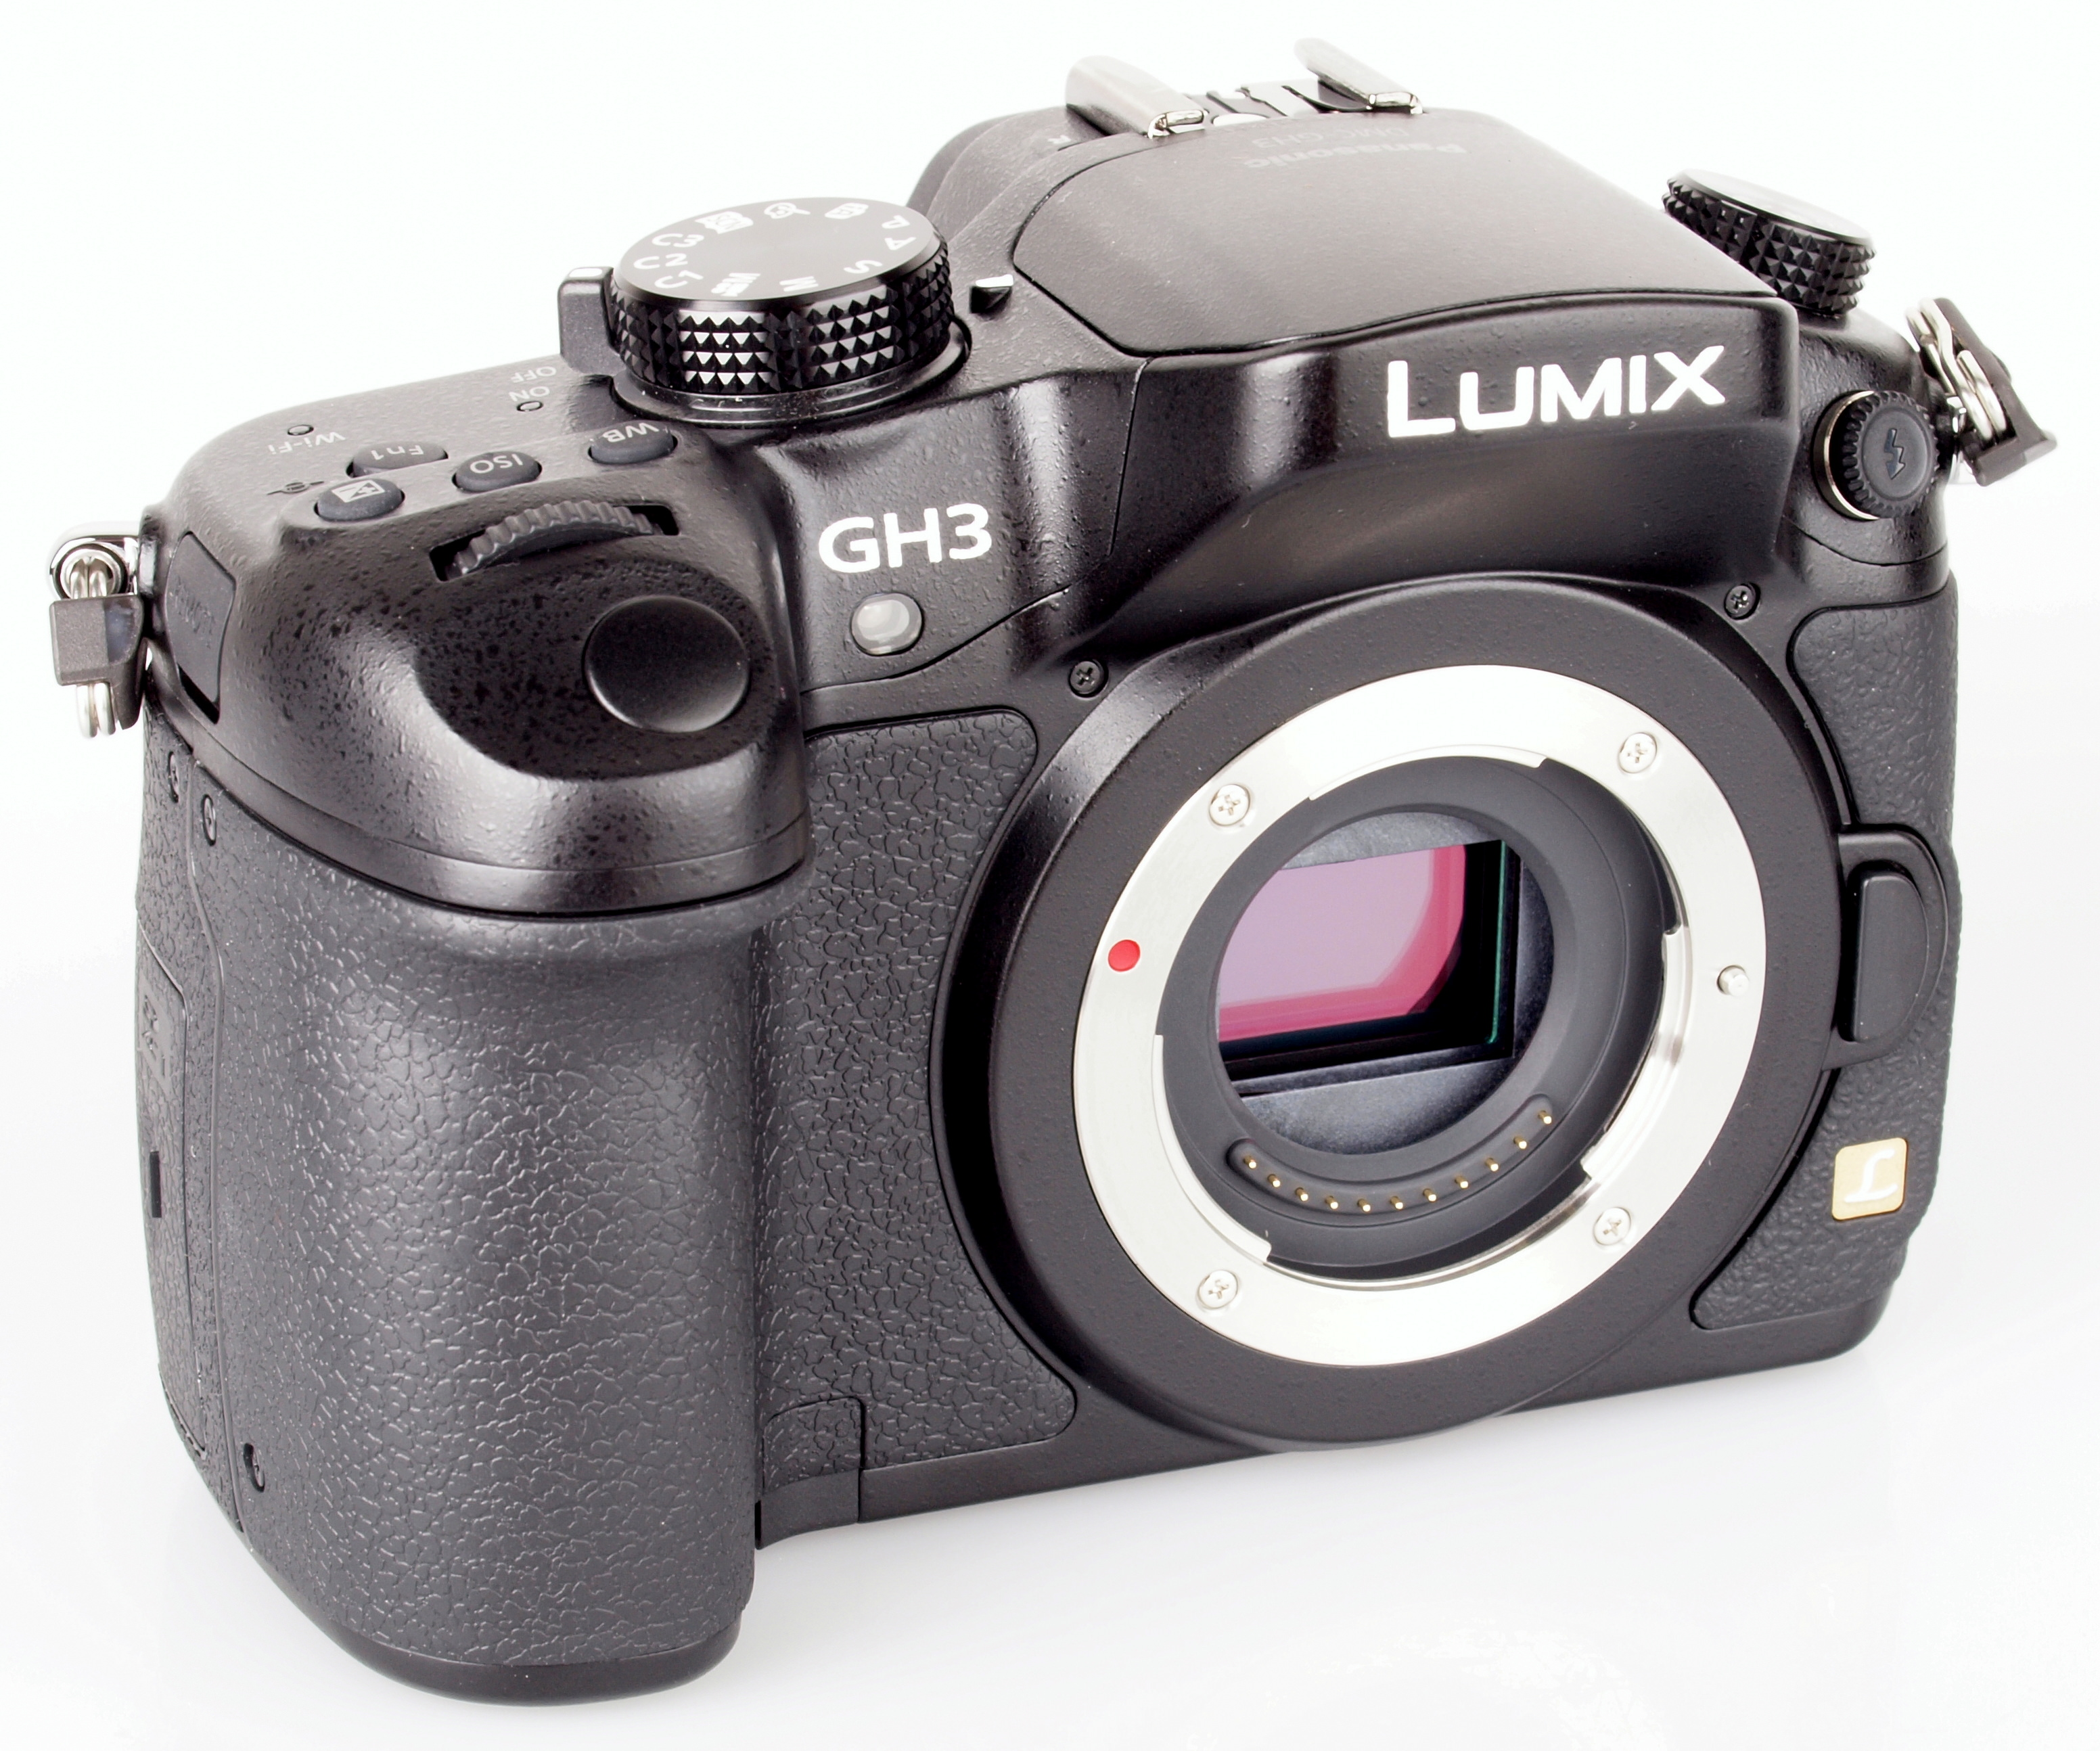 Panasonic Lumix DMC-GH3 Review: Digital Photography Review